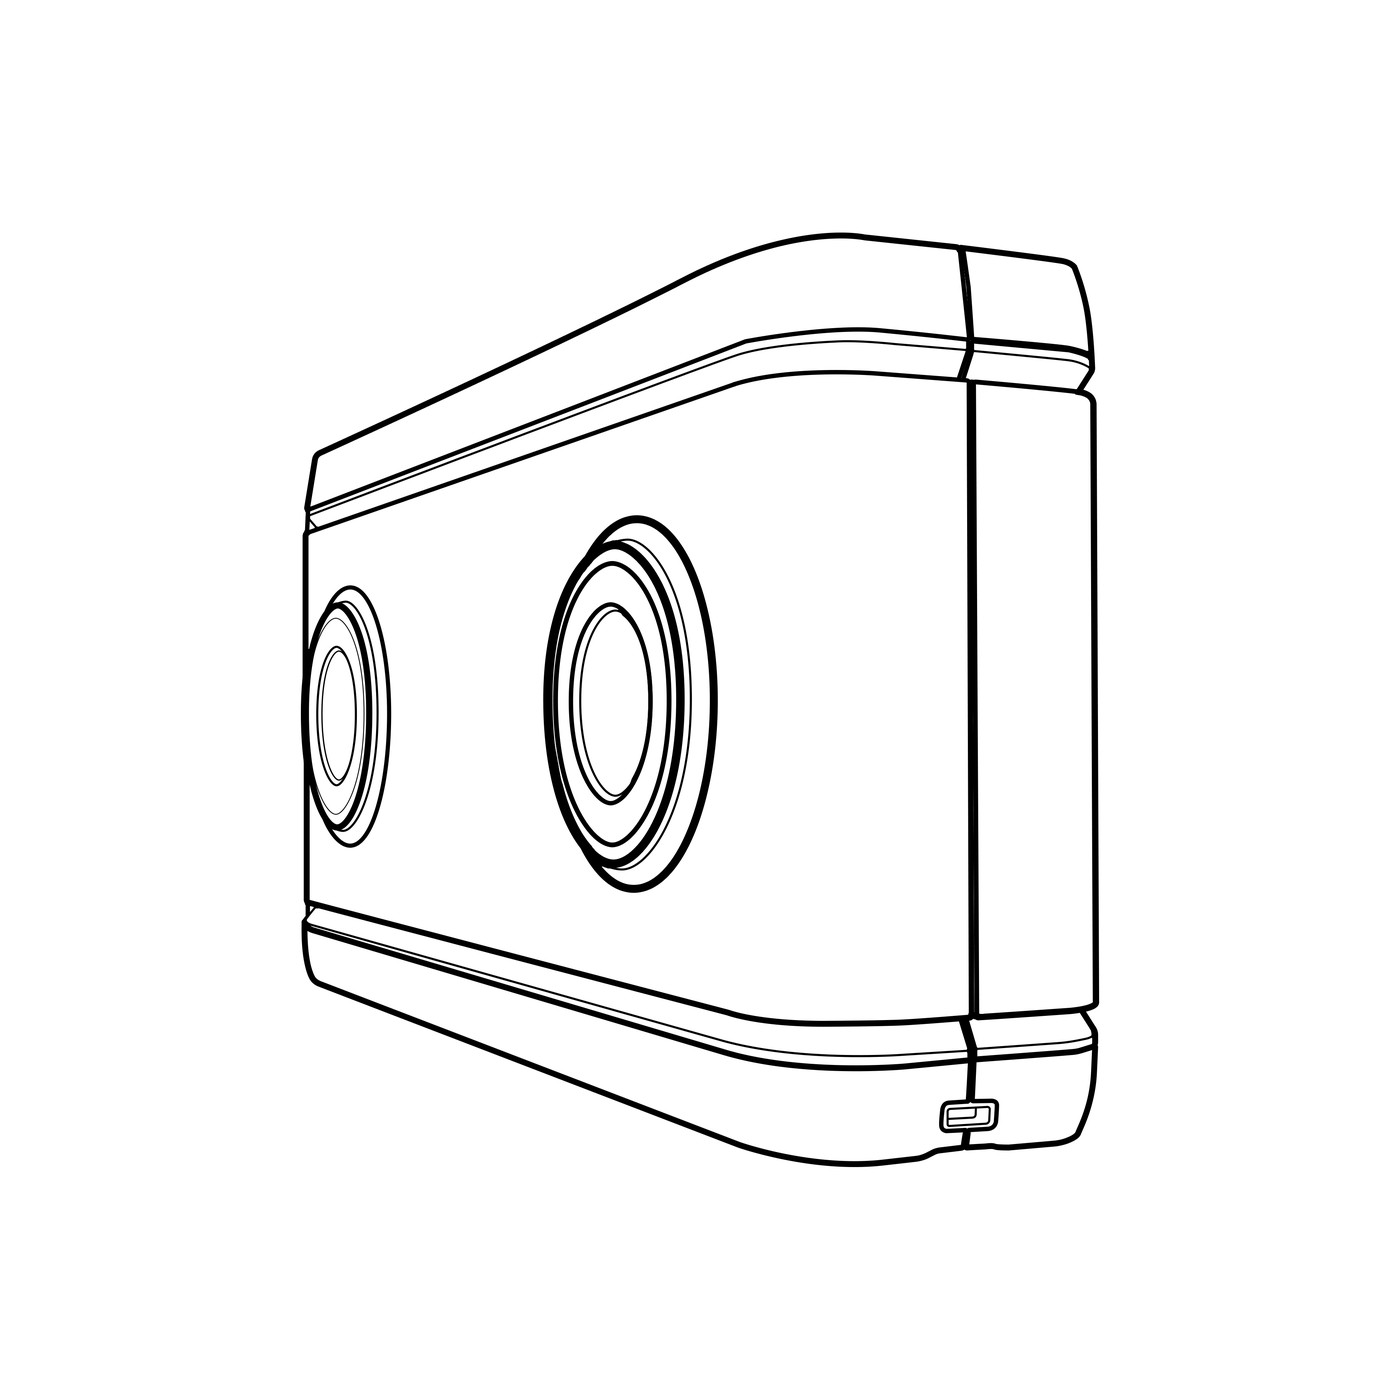 is launching a new line of cameras for 180 degree vr video Microsoft Lenovo Phone is launching a new line of cameras for 180 degree vr video the verge